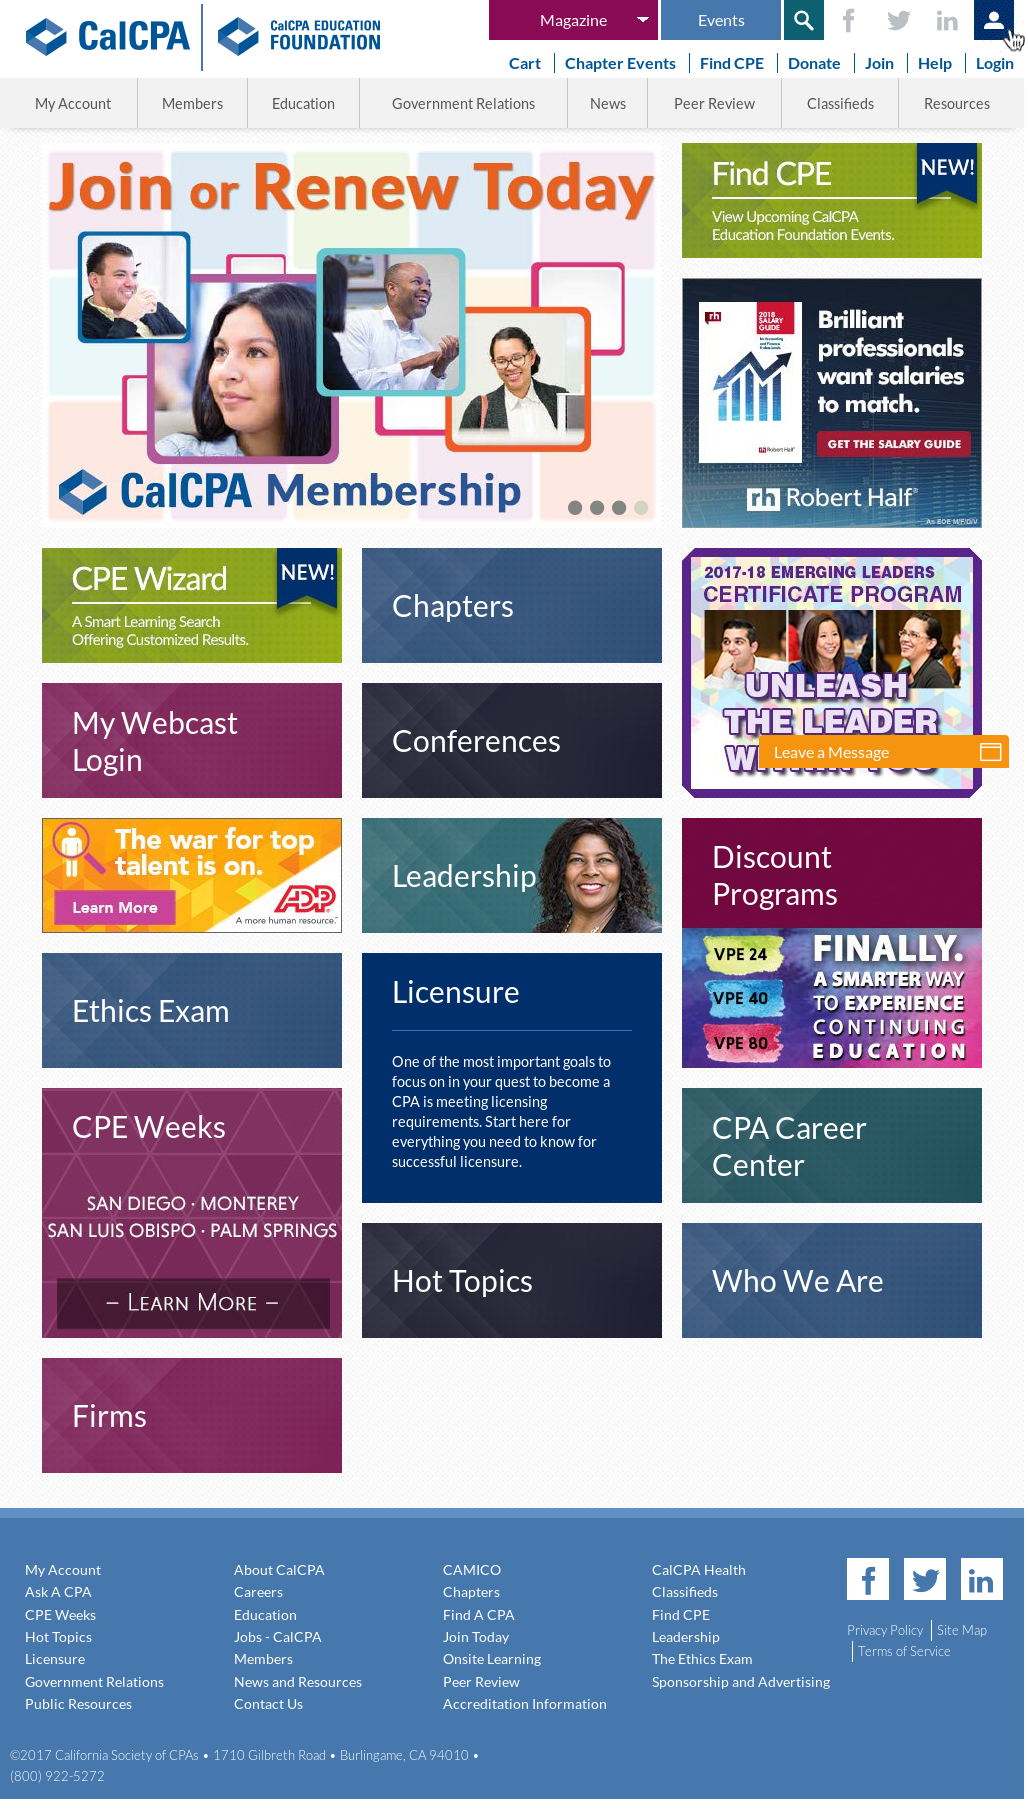 CalCPA Competitors, Revenue and Employees - Owler Company